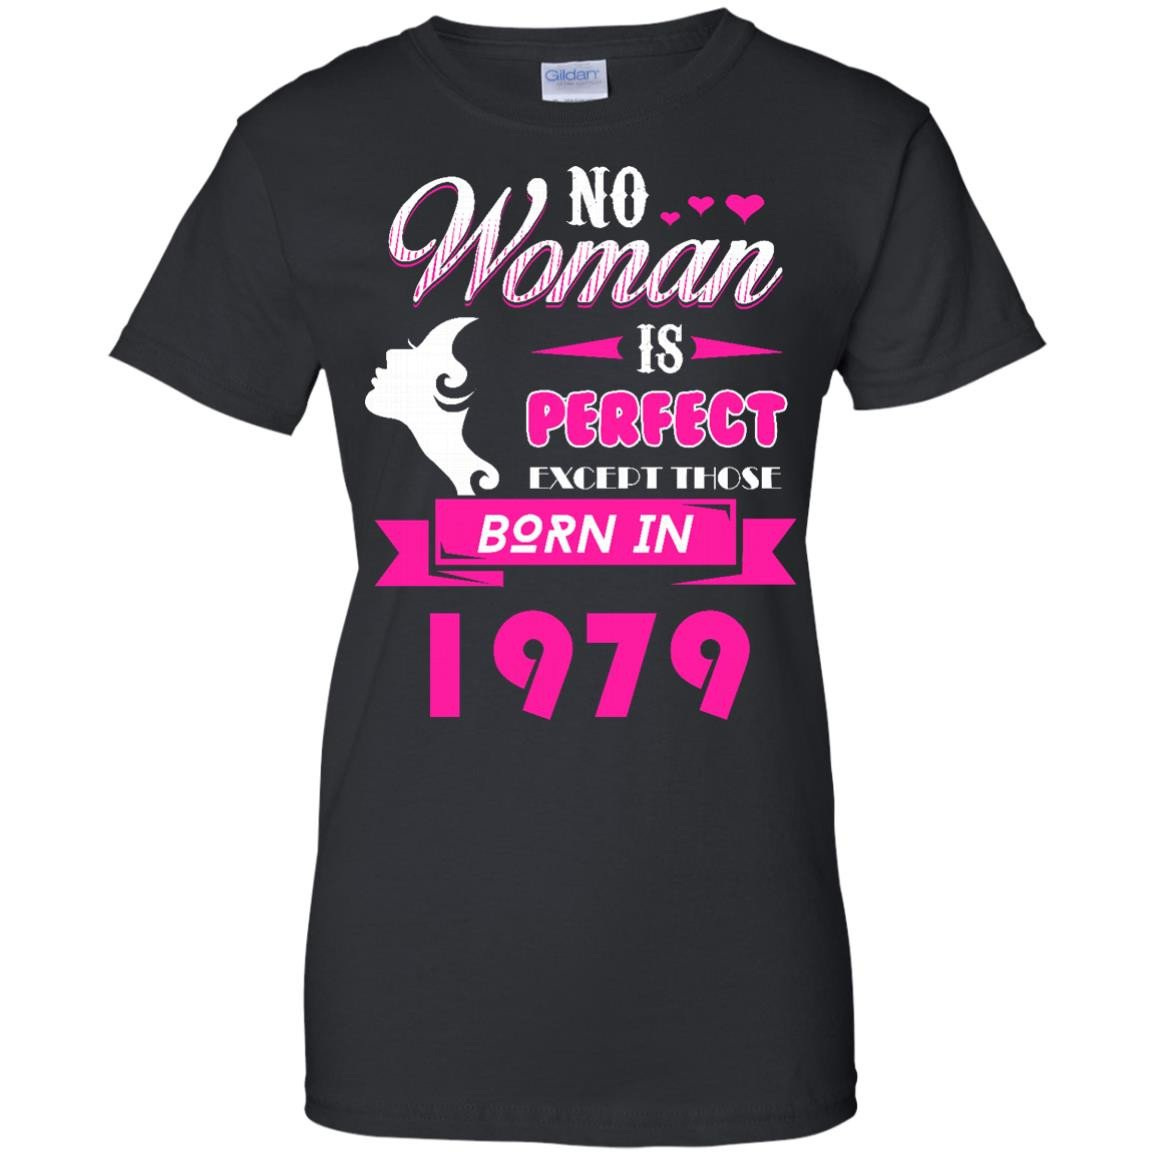 1979 Woman Shirts No Woman Perfect Except Those In 1979 T-shirts Hoodies Sweatshirts